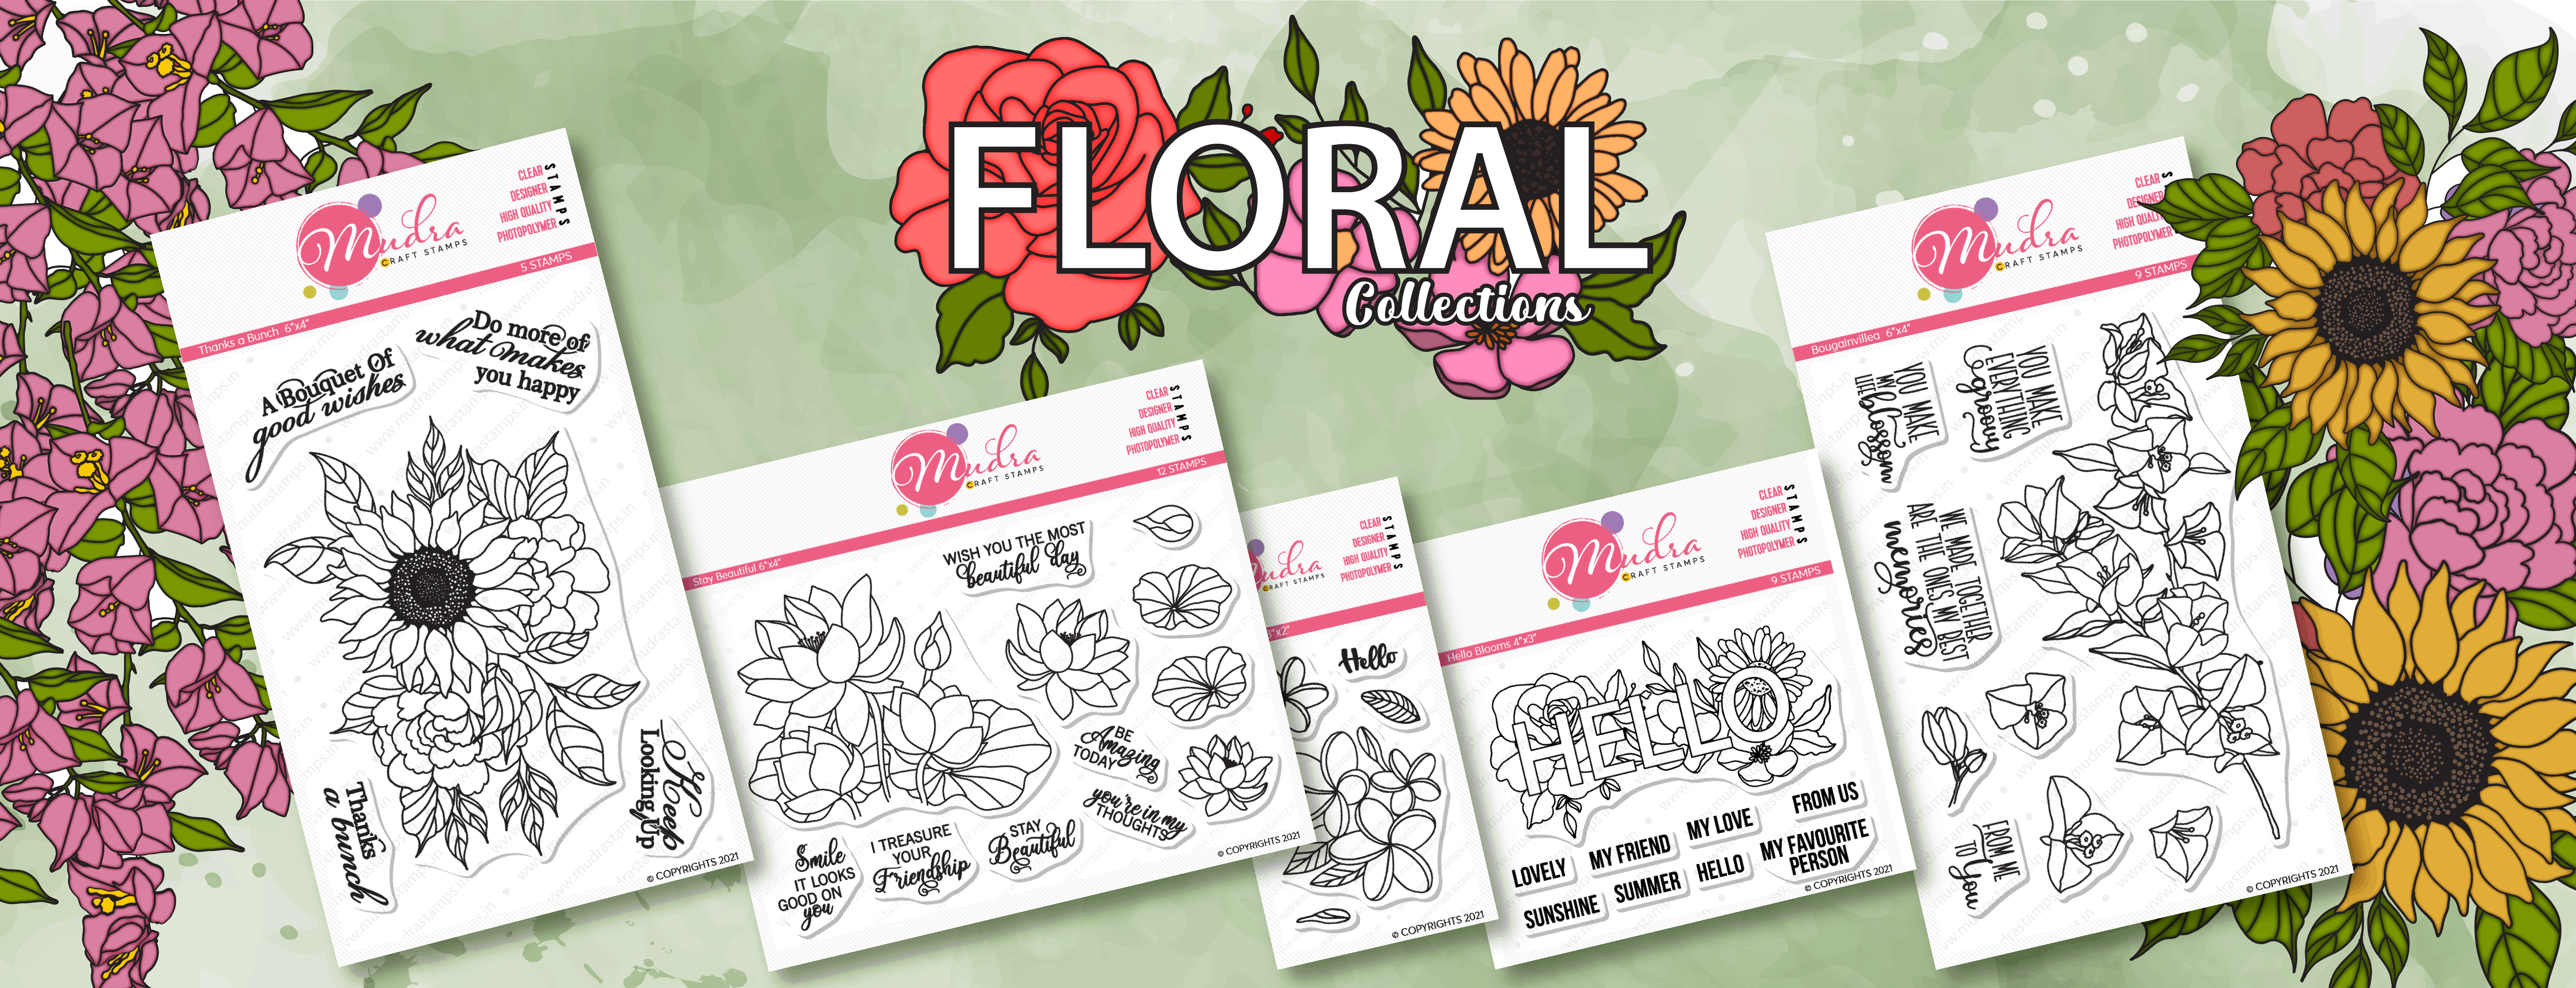 Floral Collection stamp by Mudra Craft Stamps